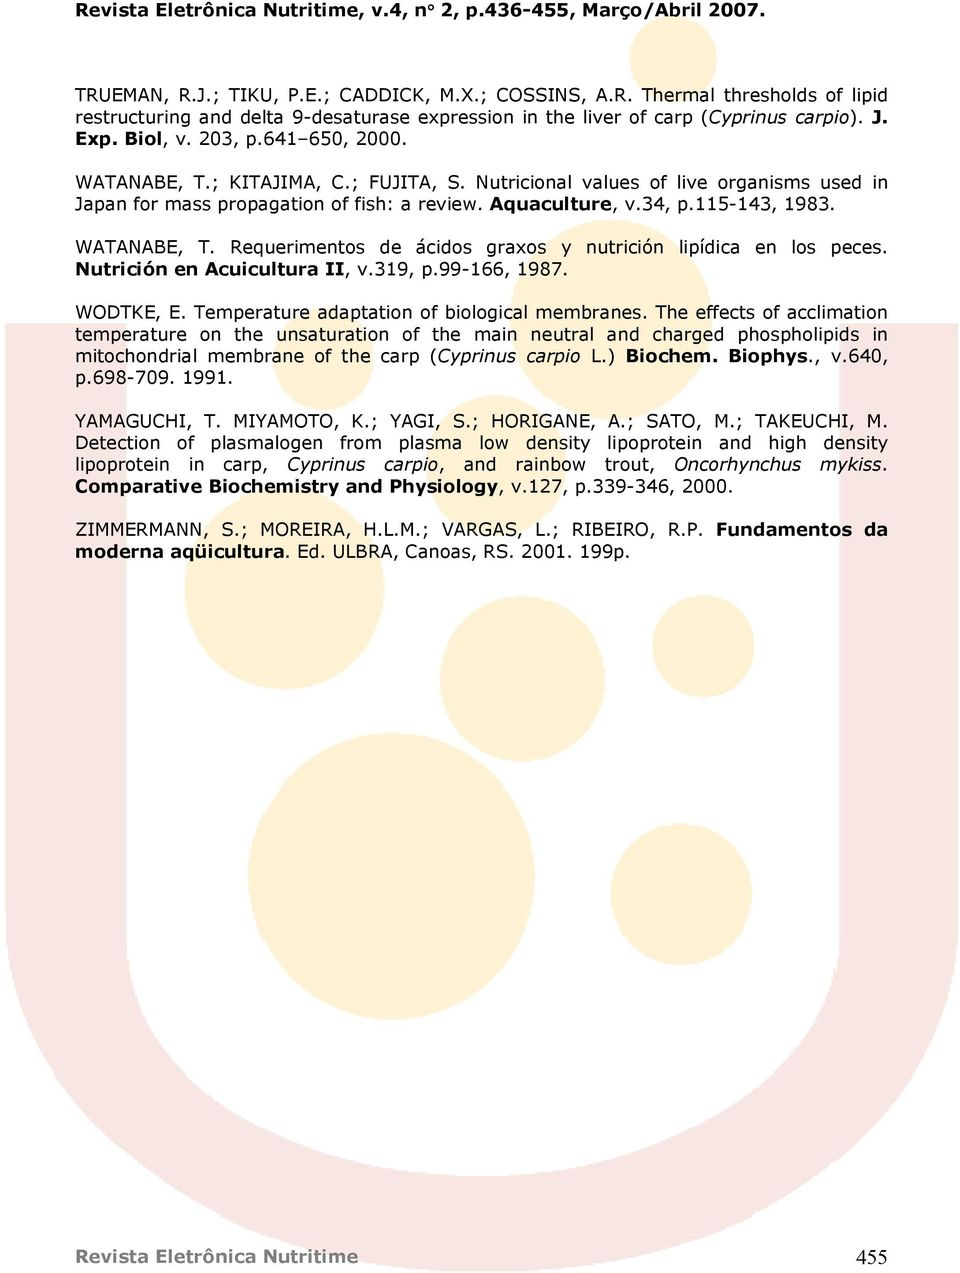 Nutrición en Acuicultura II, v.319, p.99-166, 1987. WODTKE, E. Temperature adaptation of biological membranes.